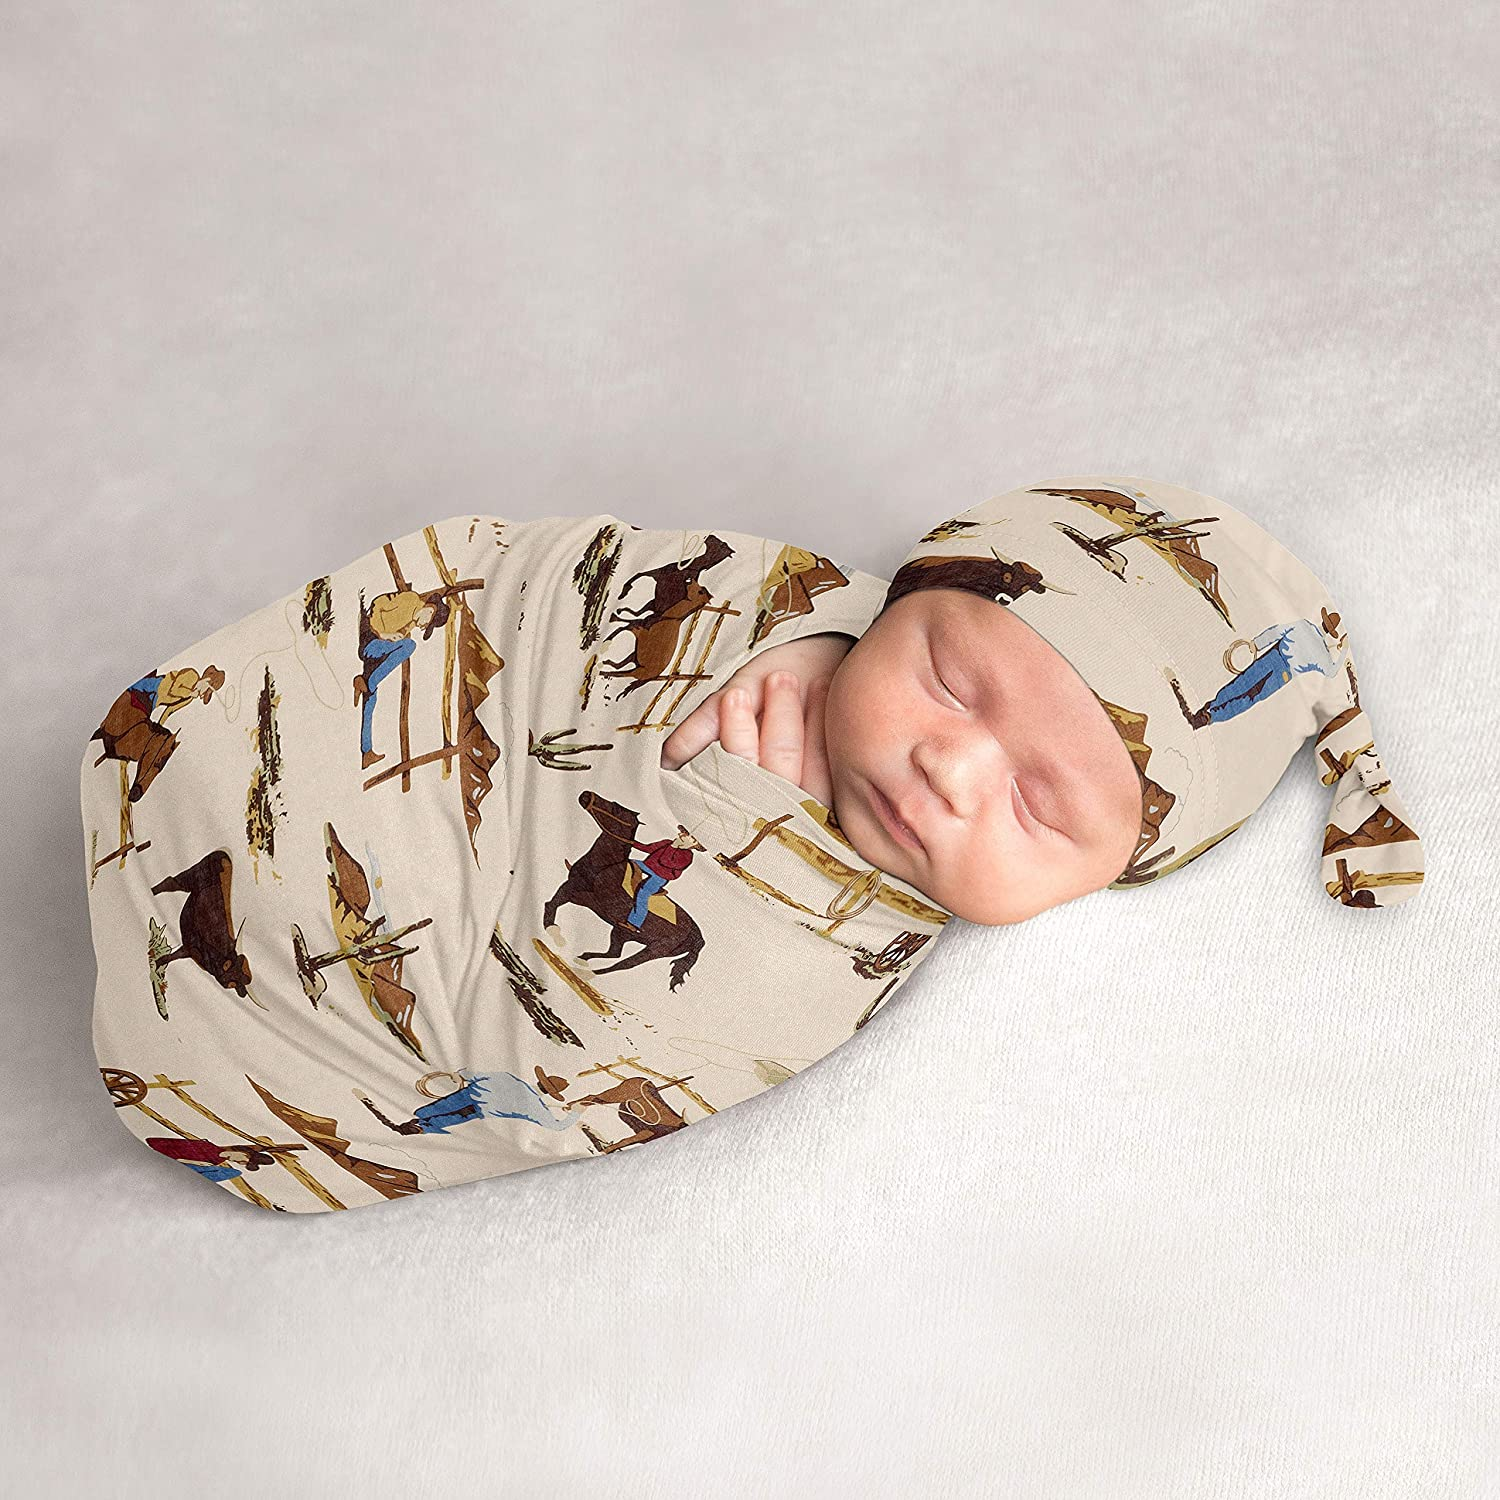 Sweet Jojo Designs Wild West Cowboy Baby Boy Cocoon and Beanie Hat 2pc Set Jersey Stretch Knit Sleeping Bag for Infant Newborn Nursery Sleep Wrap Sack - Red, Blue, Tan Western Southern Country Horse